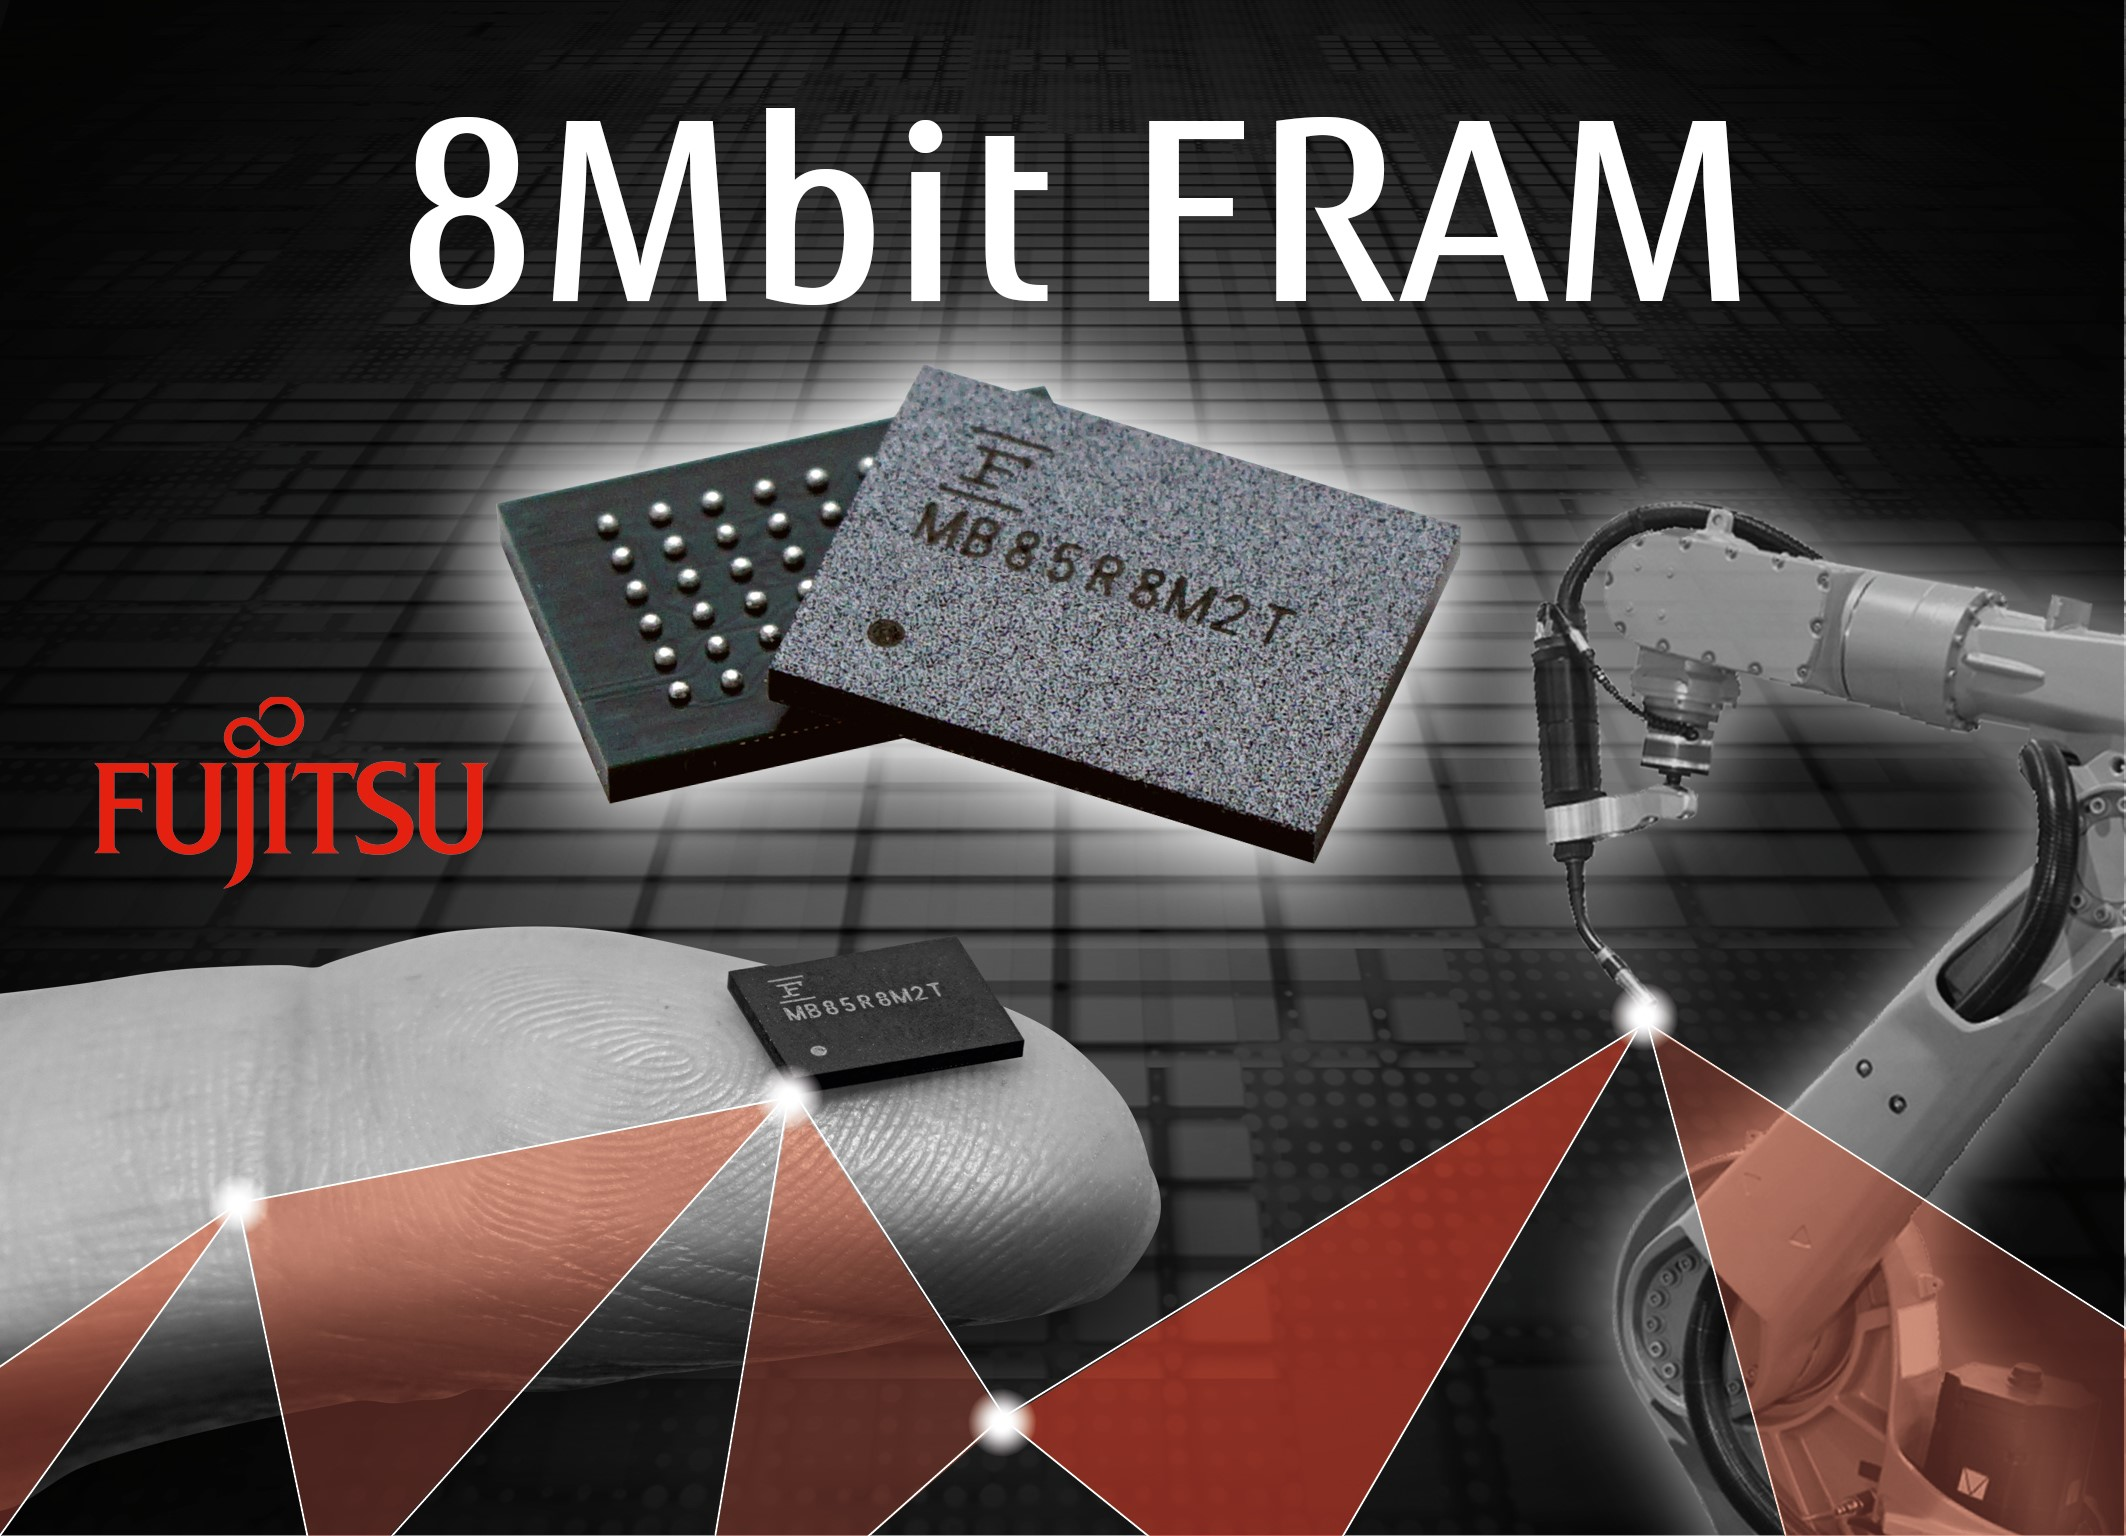 Fujitsu In Mass Production Of An 8mbit Fram